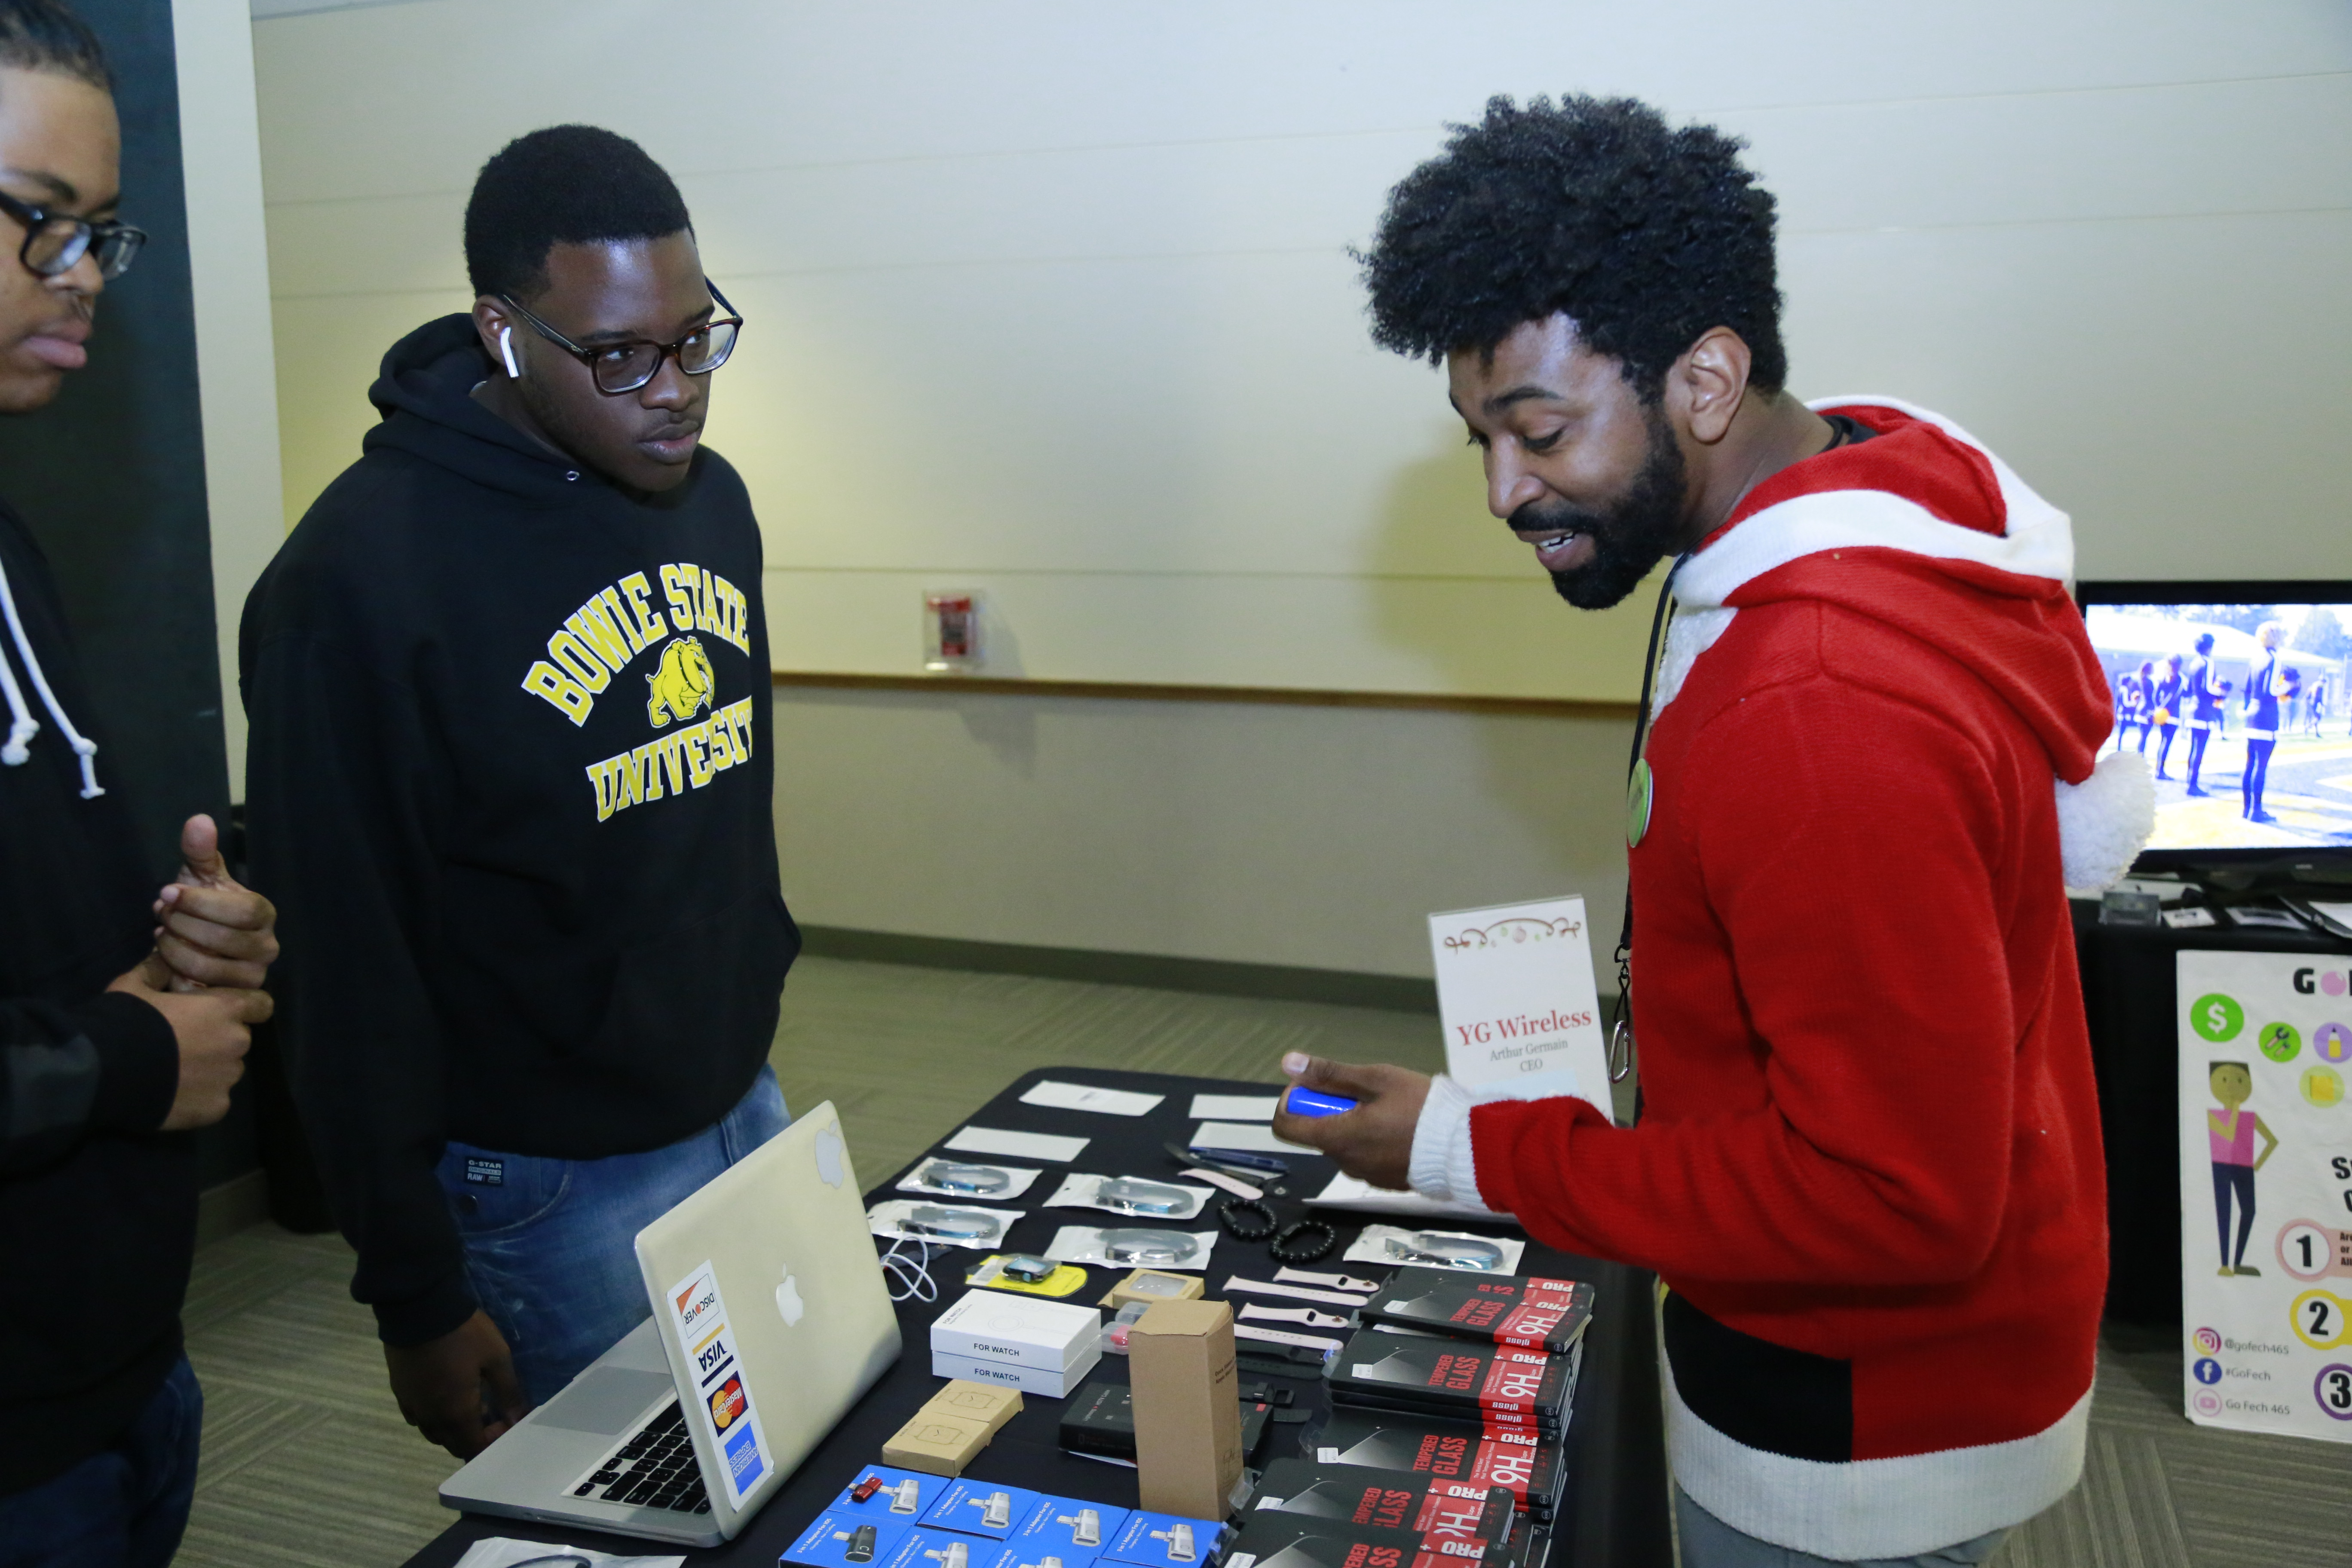 Male student showcases items for sale on a table to another male student